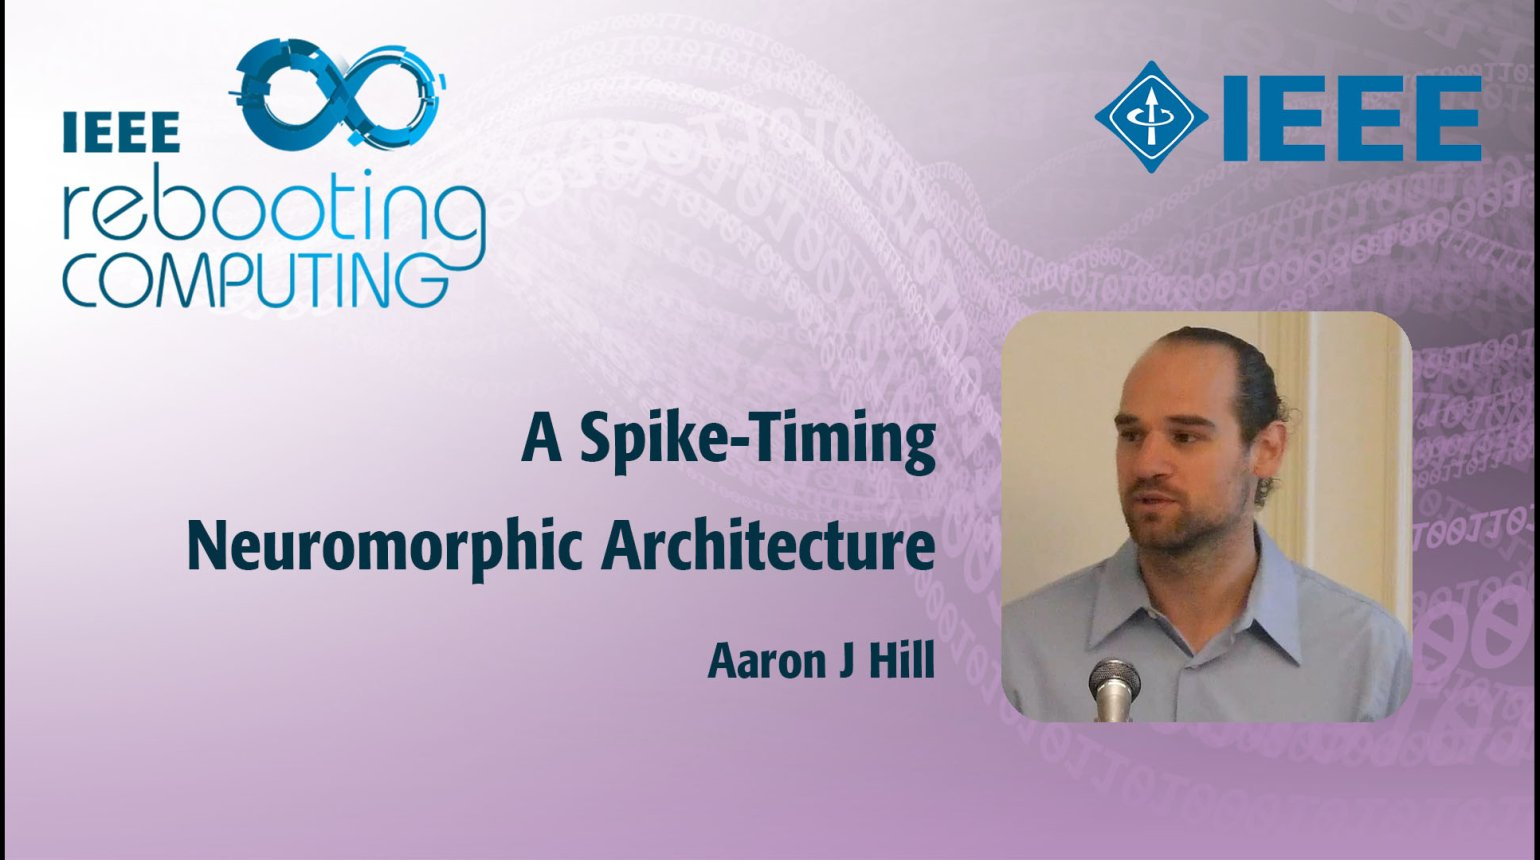 A Spike-Timing Neuromorphic Architecture: IEEE Rebooting Computing 2017